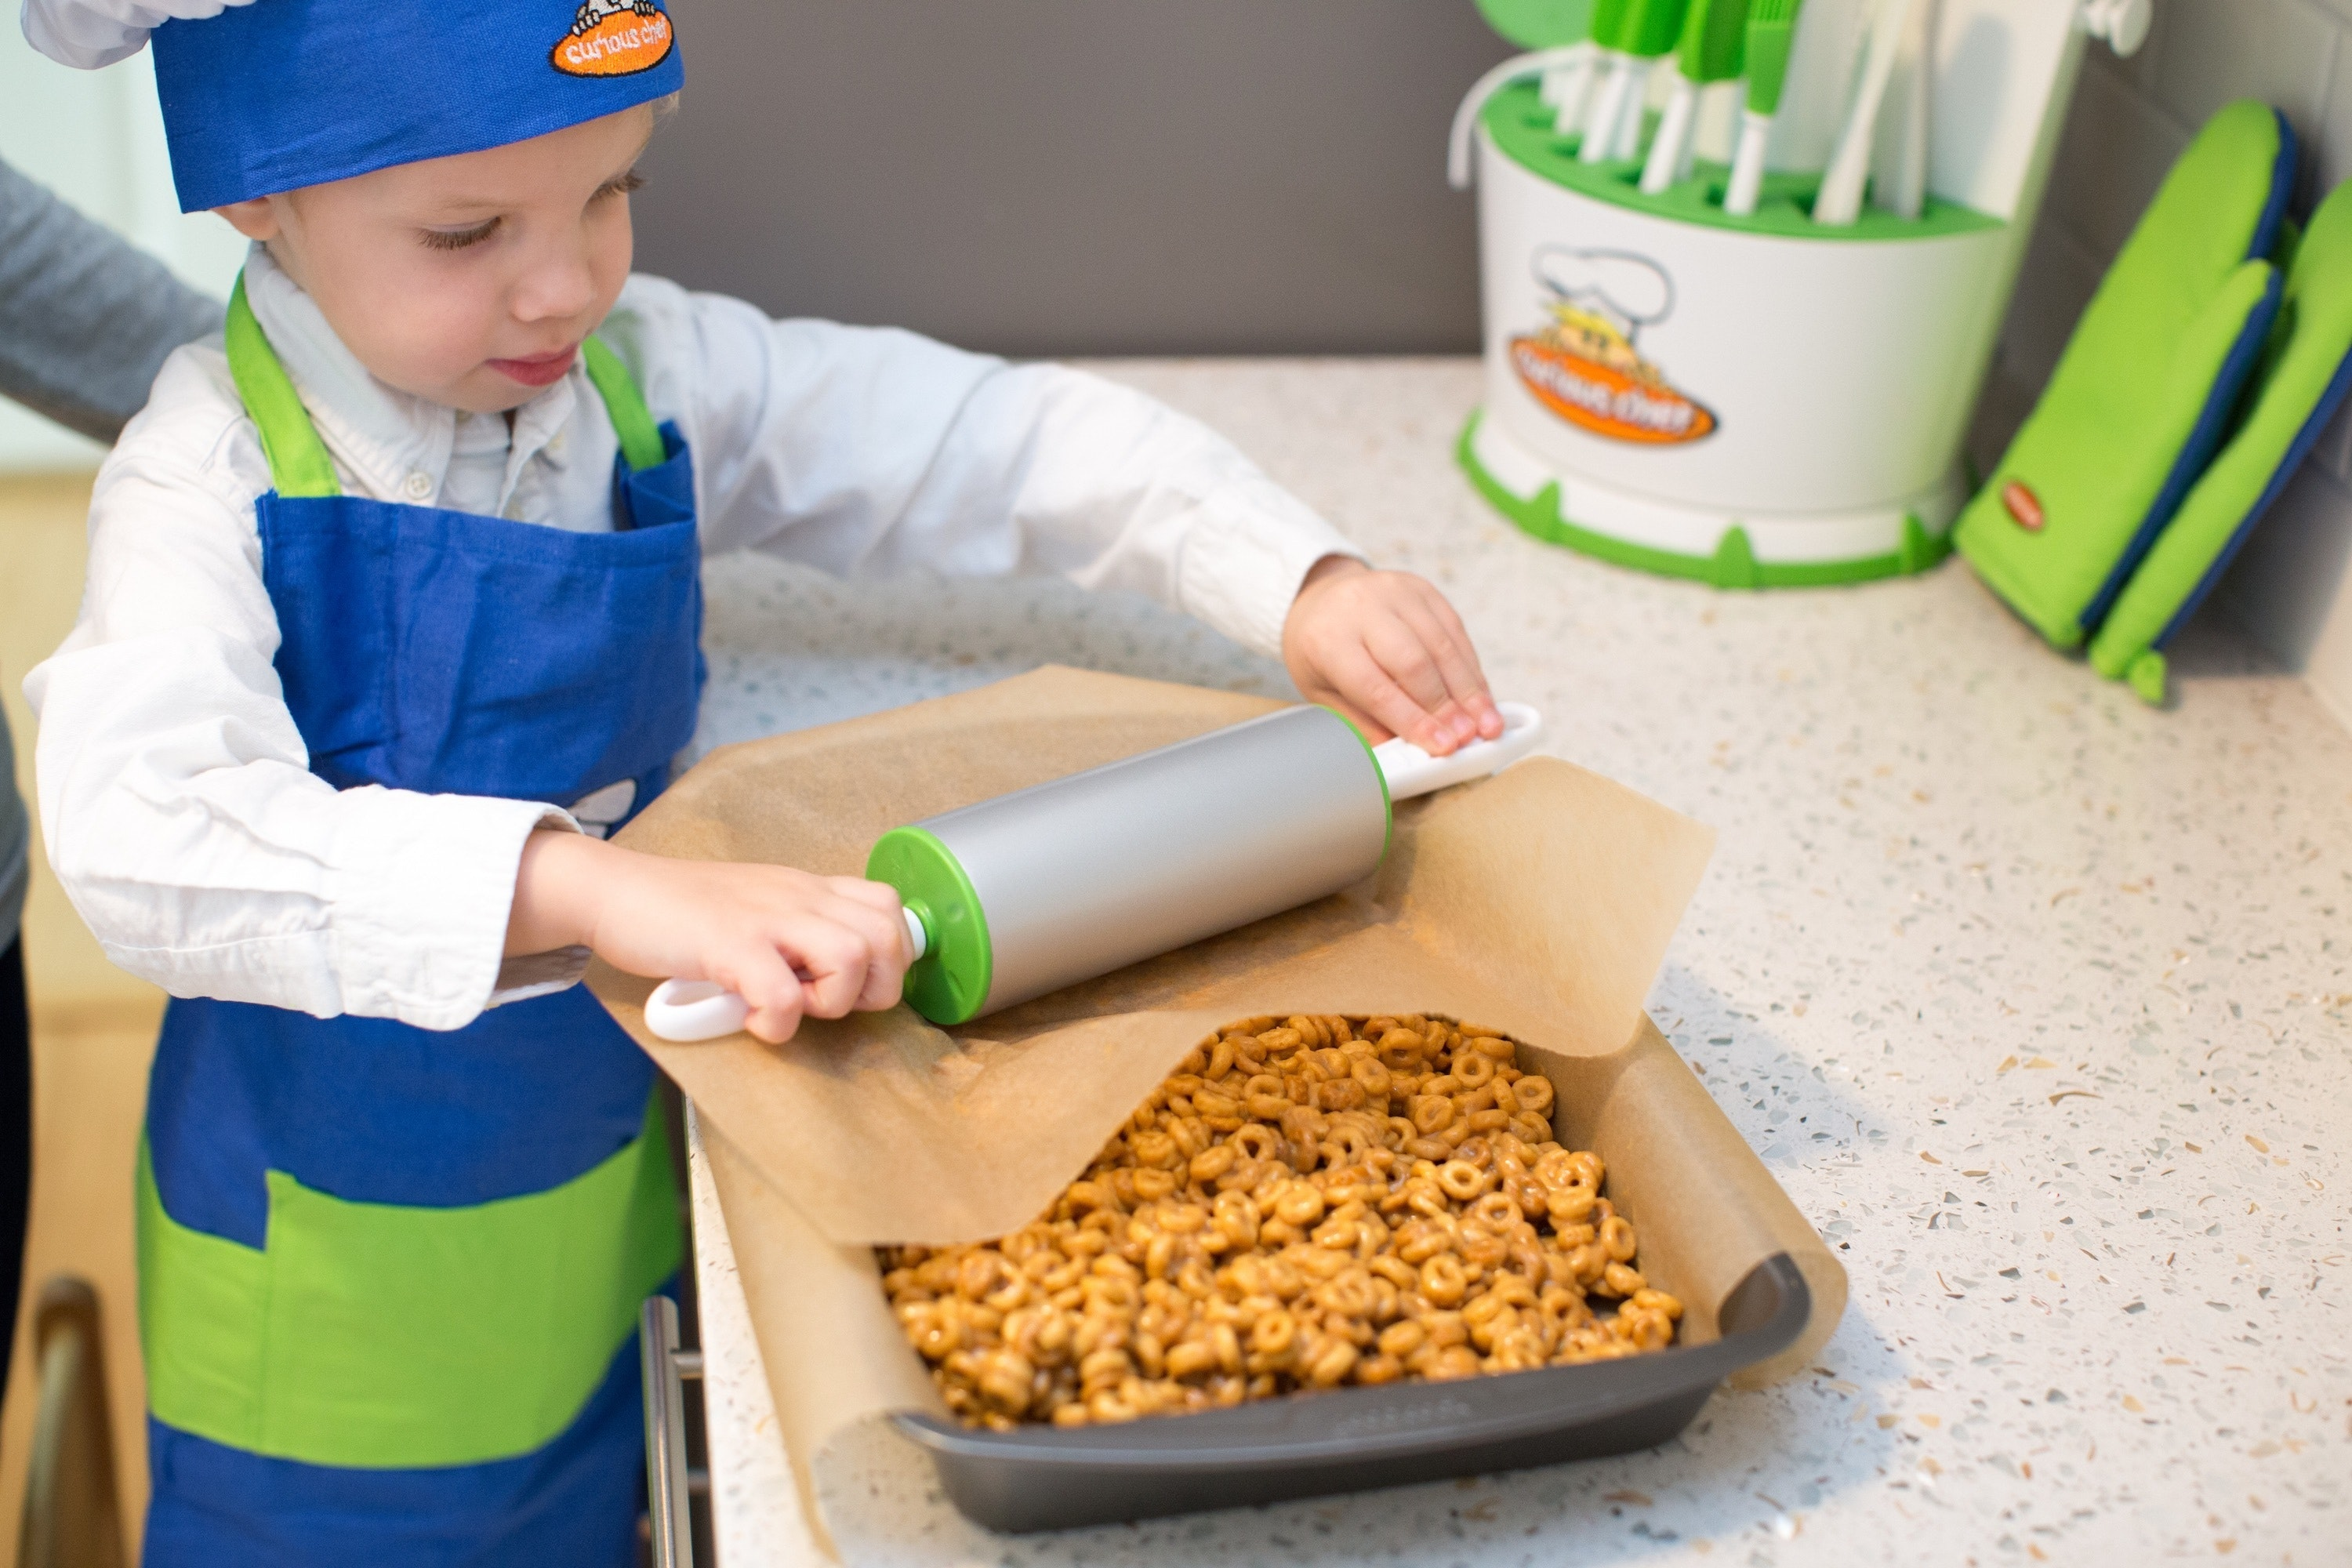 Cooking-With-Kids-7245-resize